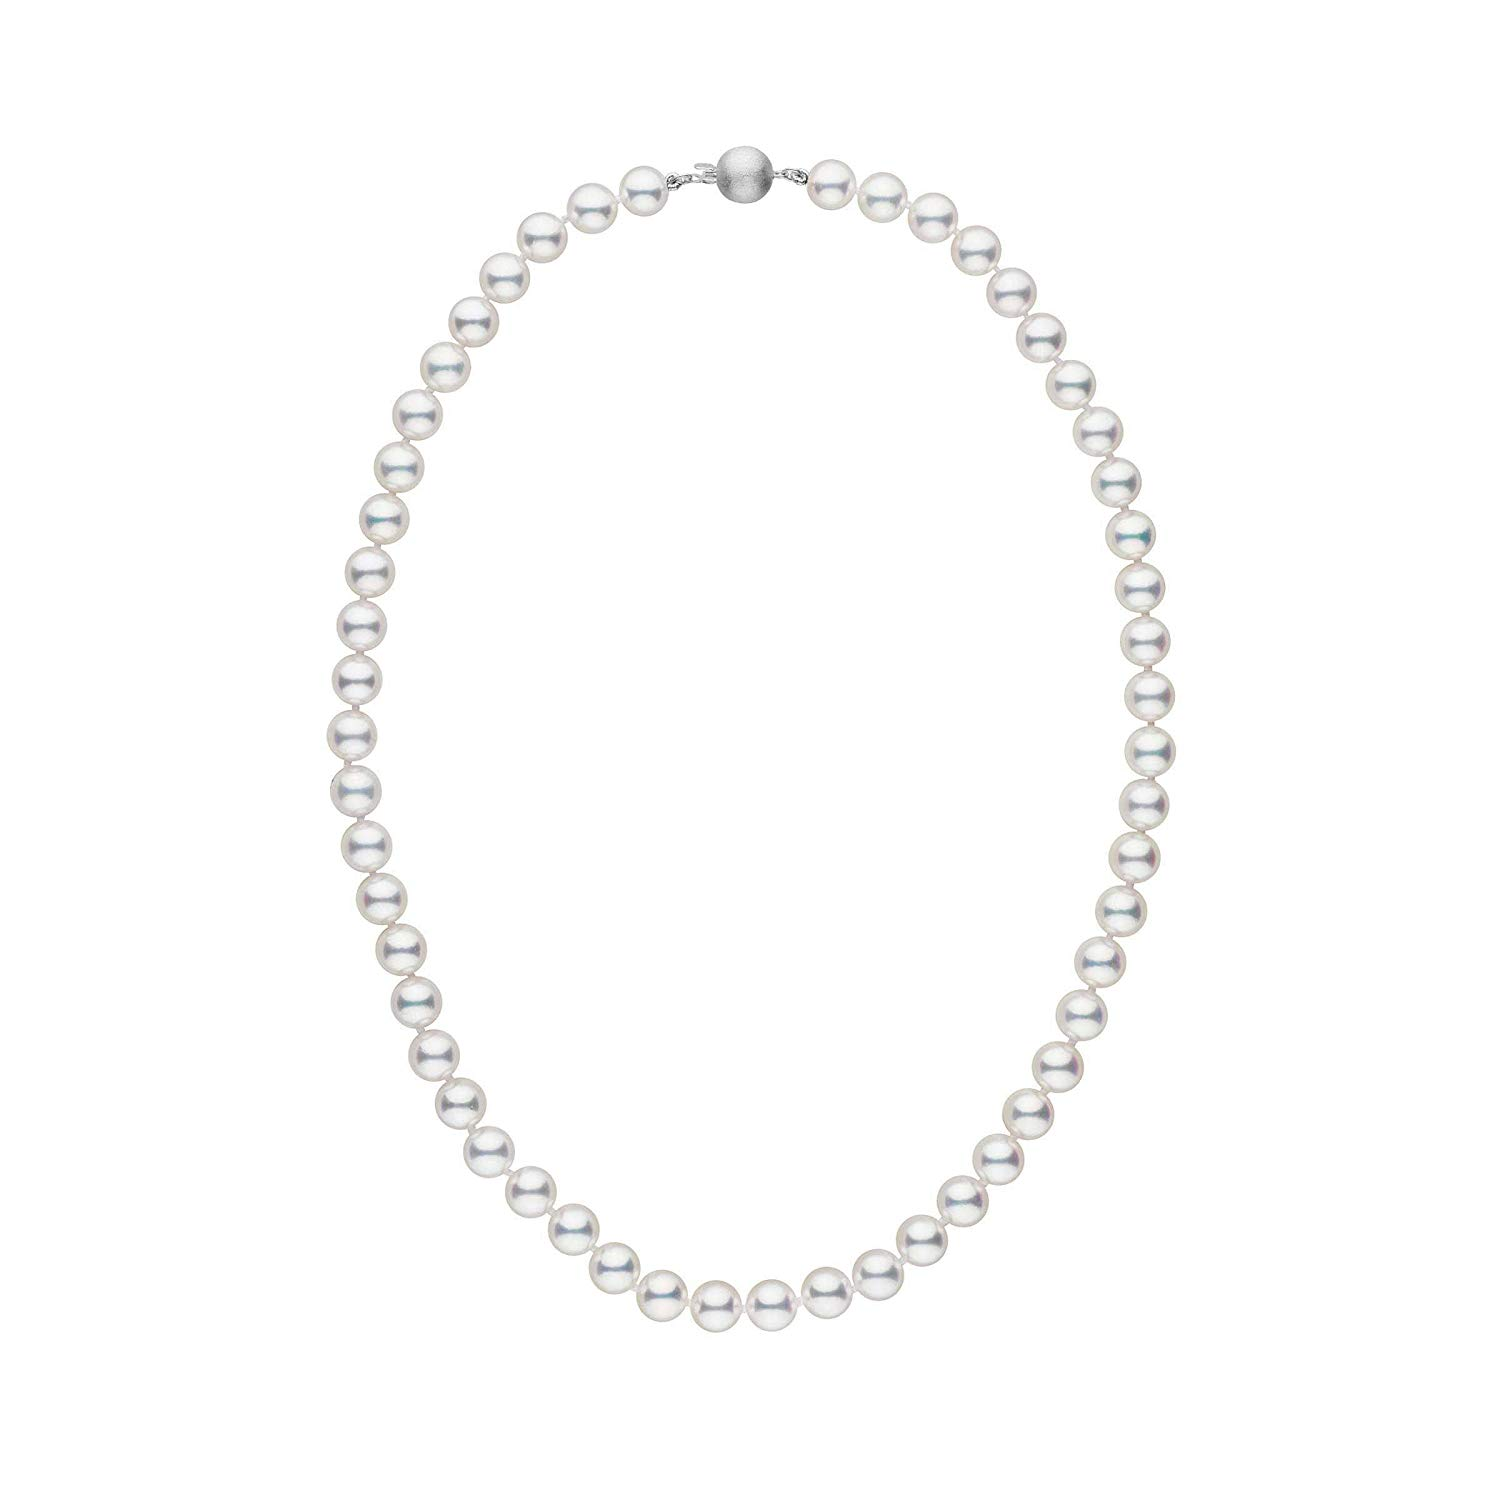 7.0-7.5 mm 16 Inch White Hanadama Akoya Cultured Pearl Necklace